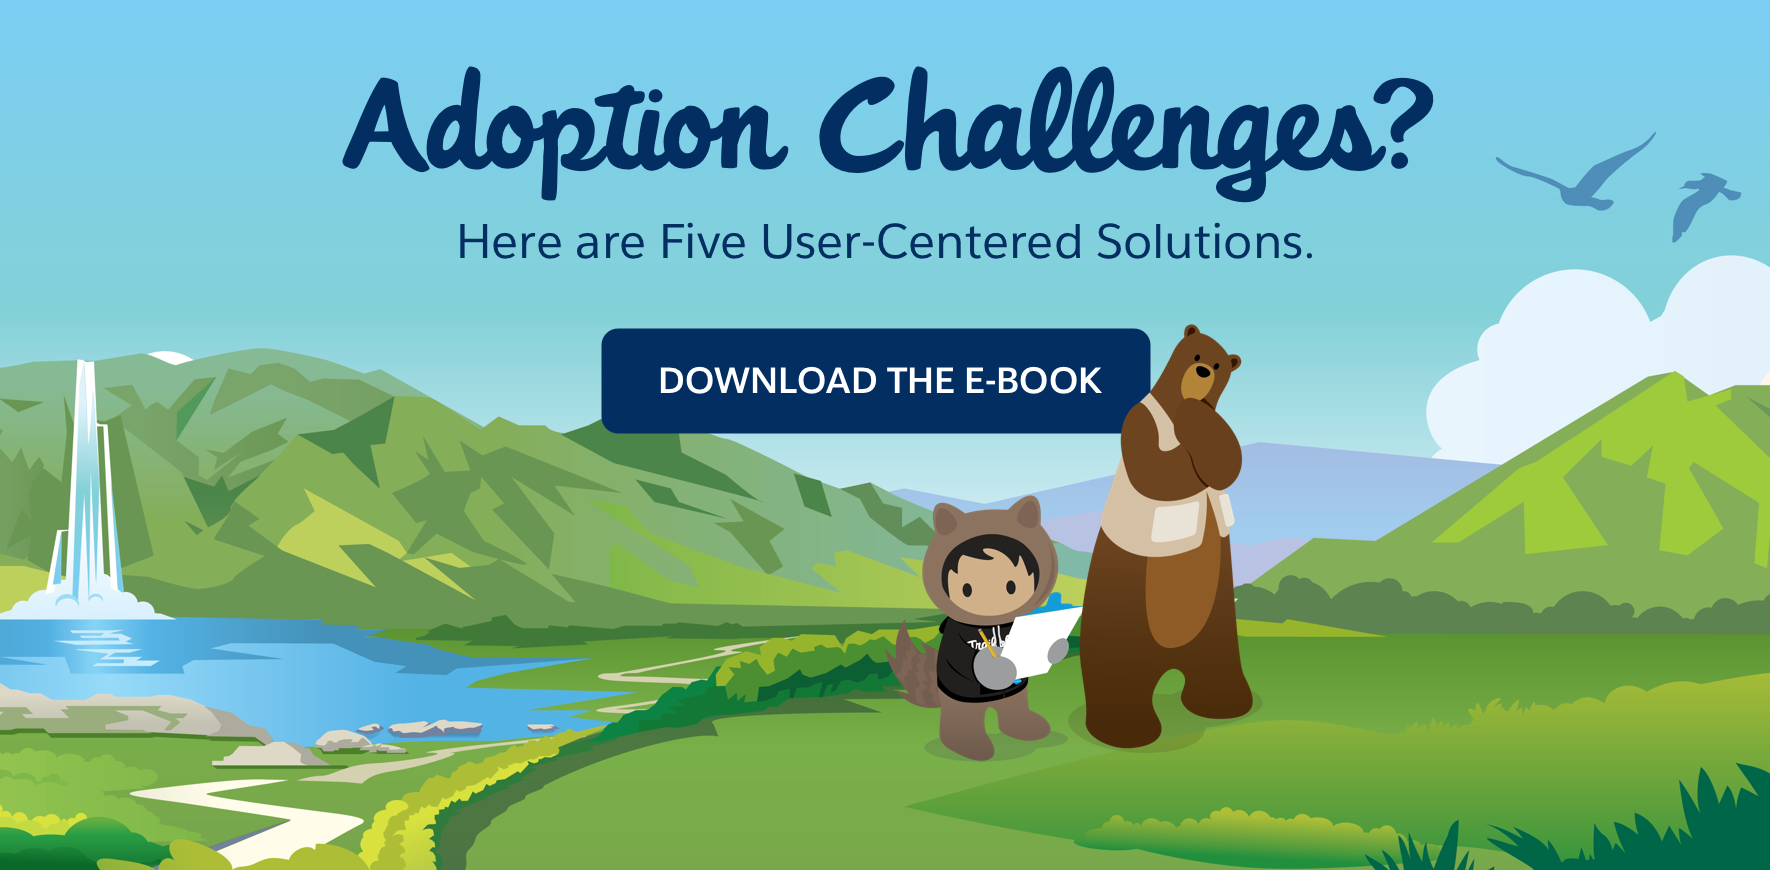 Adoption Challenges? Here are five user-centered solutions. Download the e-book!